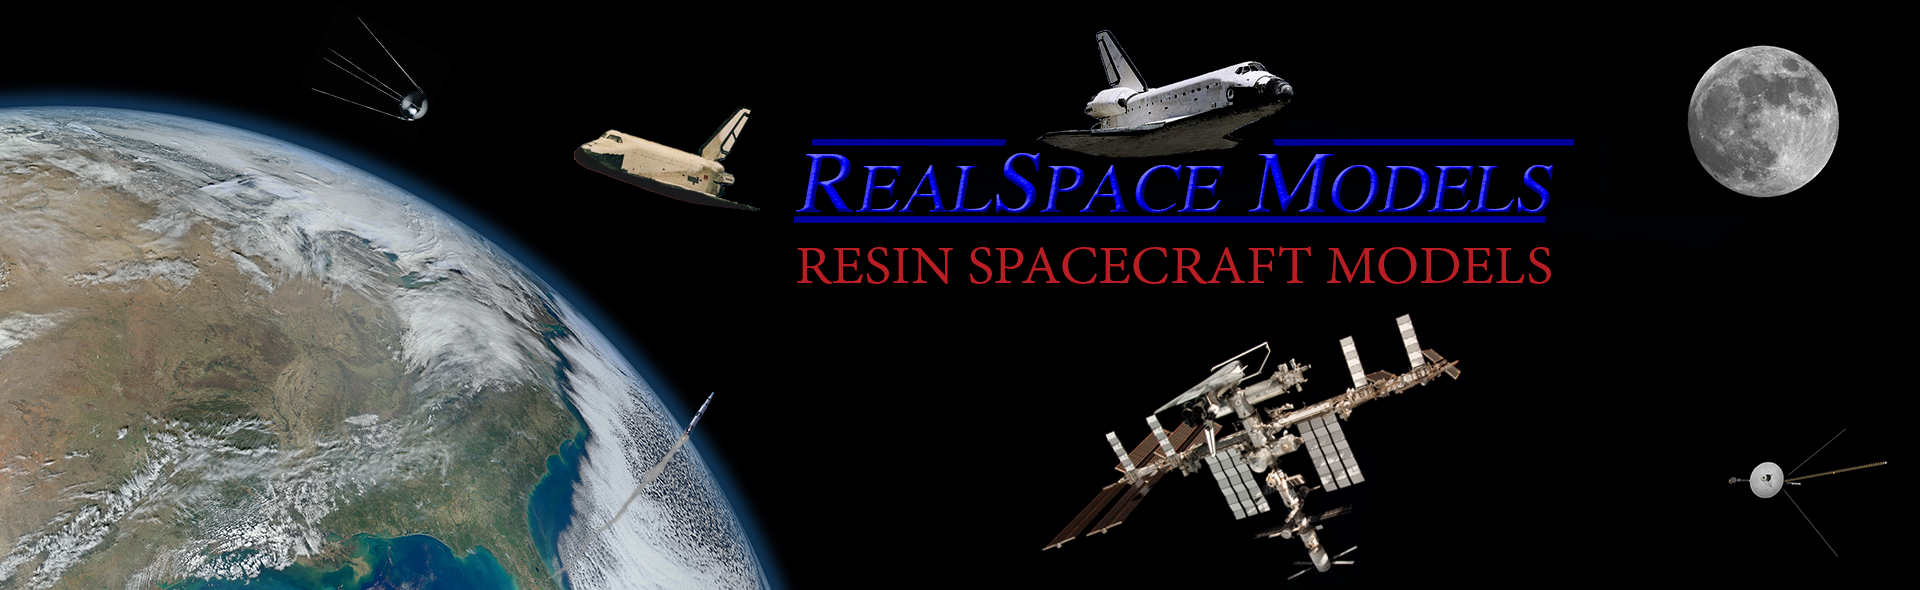 RealSpace Models